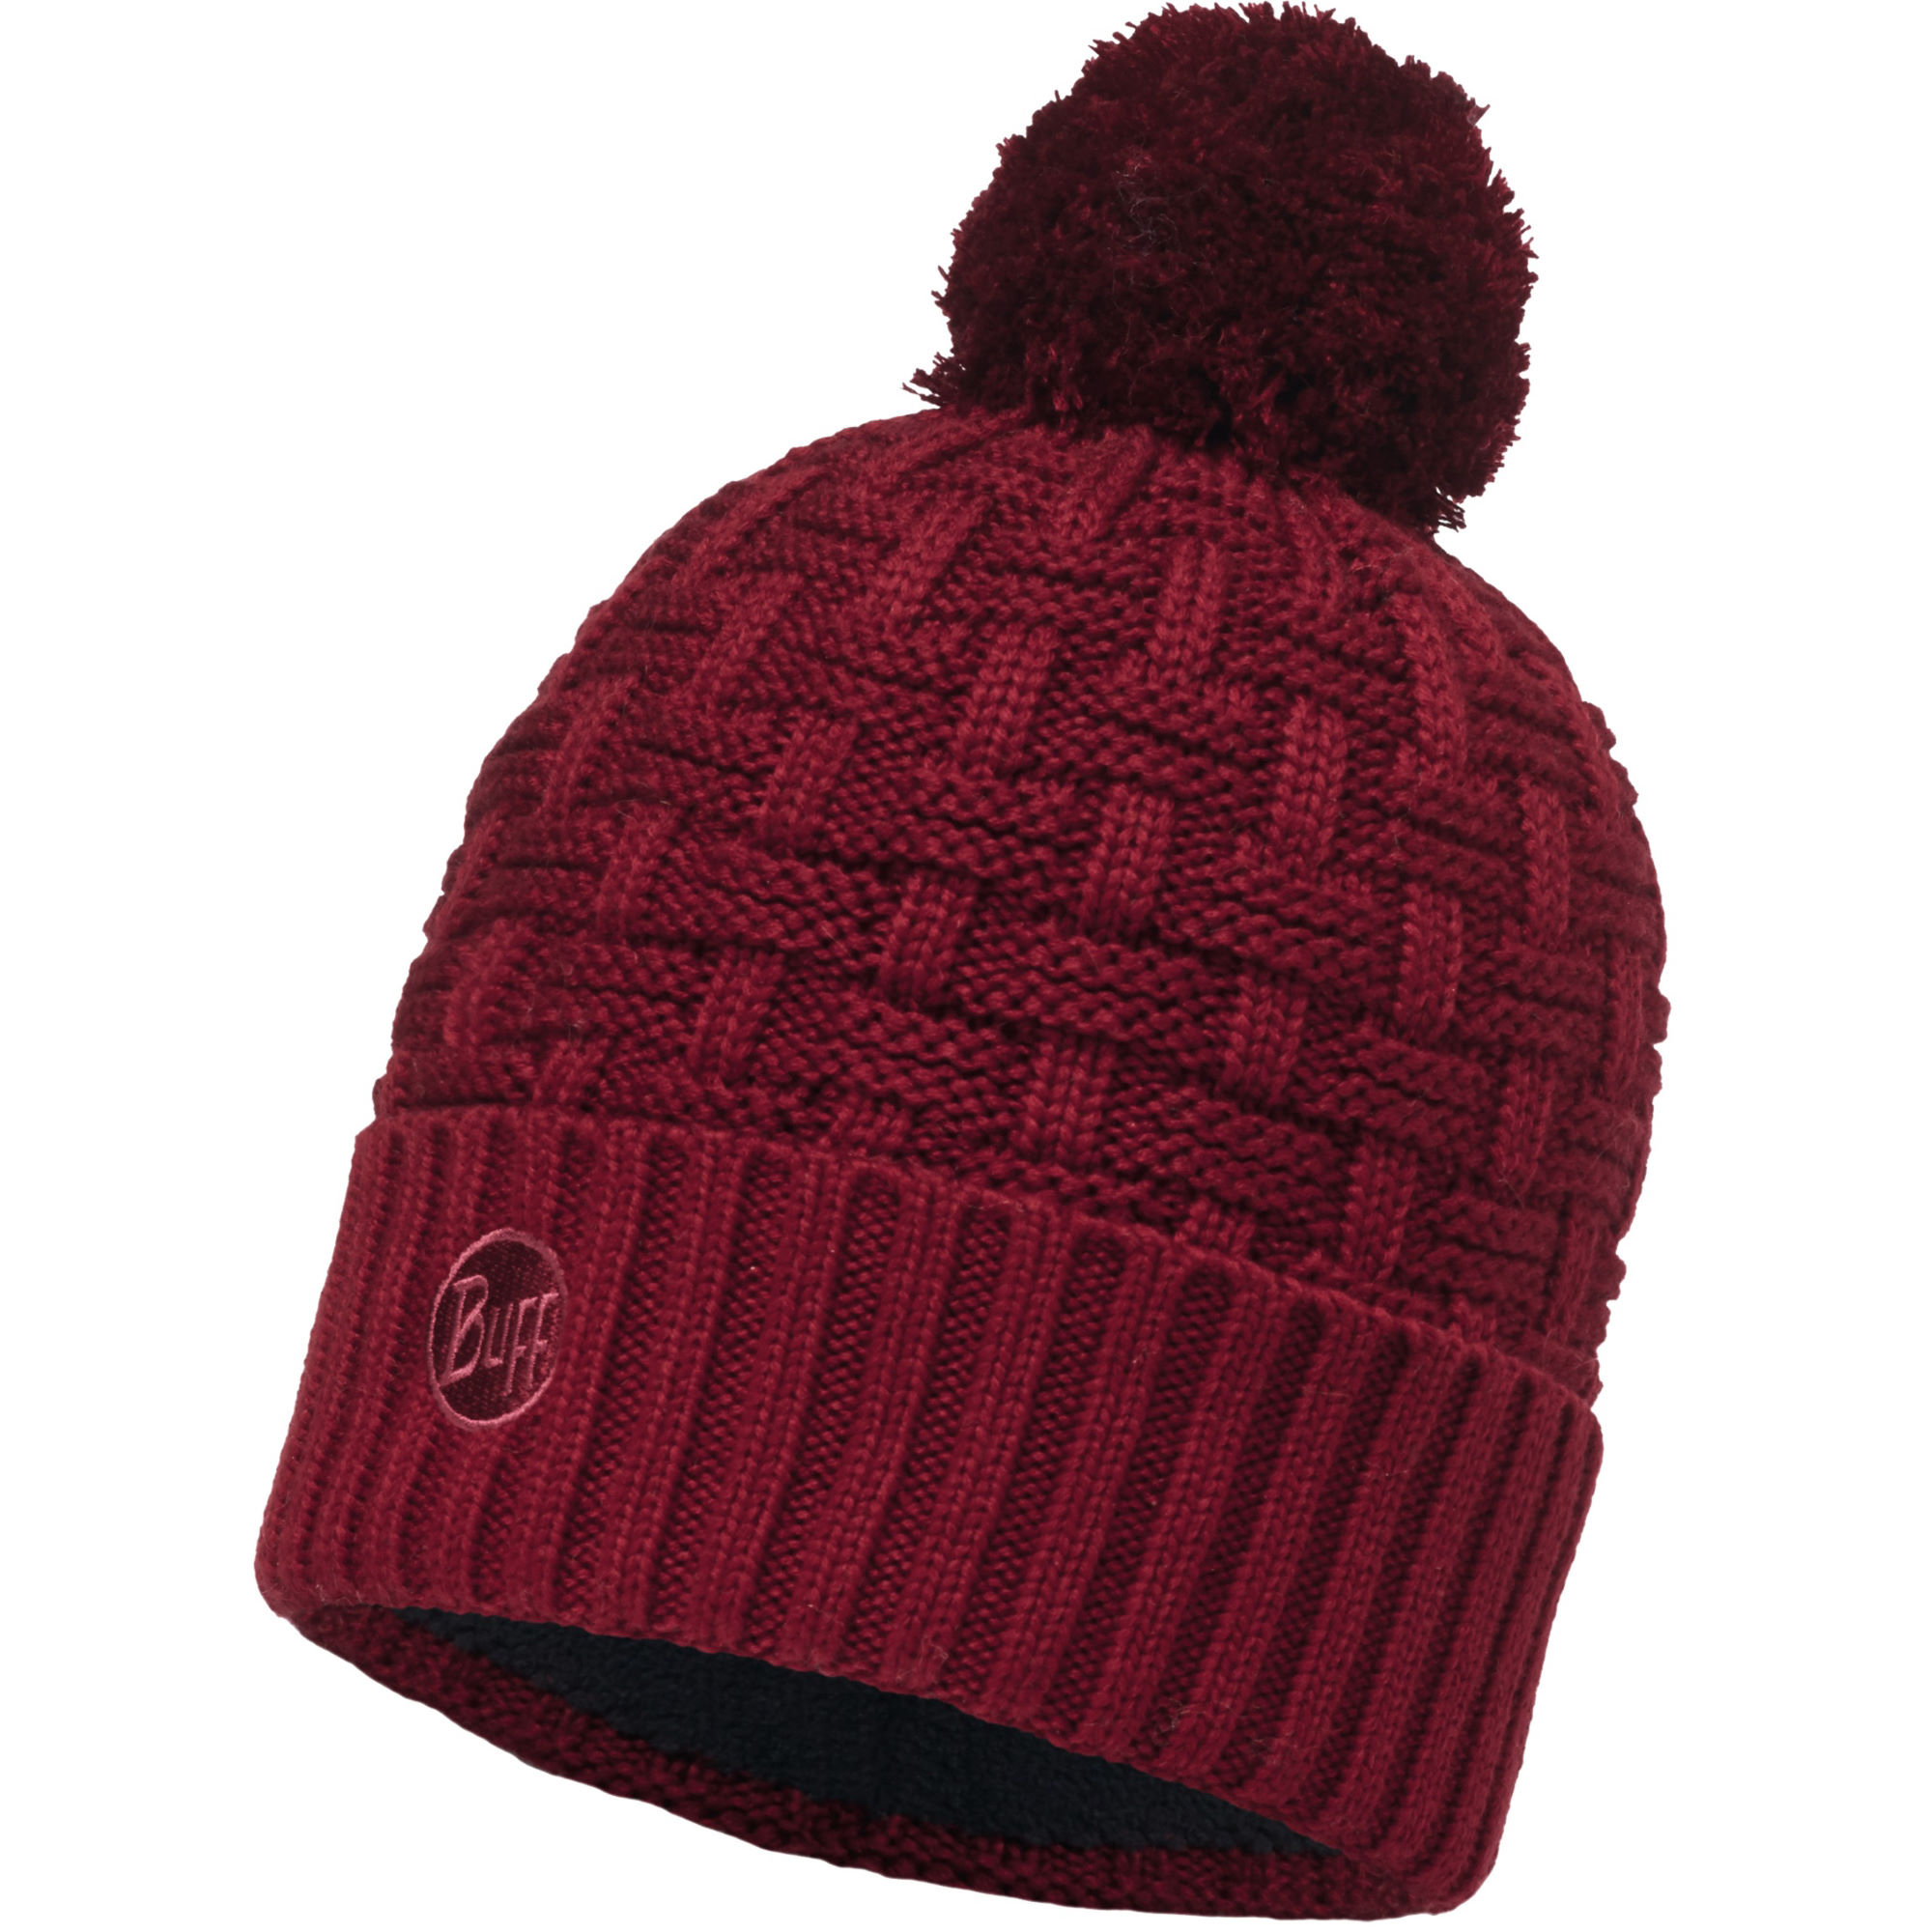 8f4925f4f2525 Buff Airon Knitted Hat £29.00